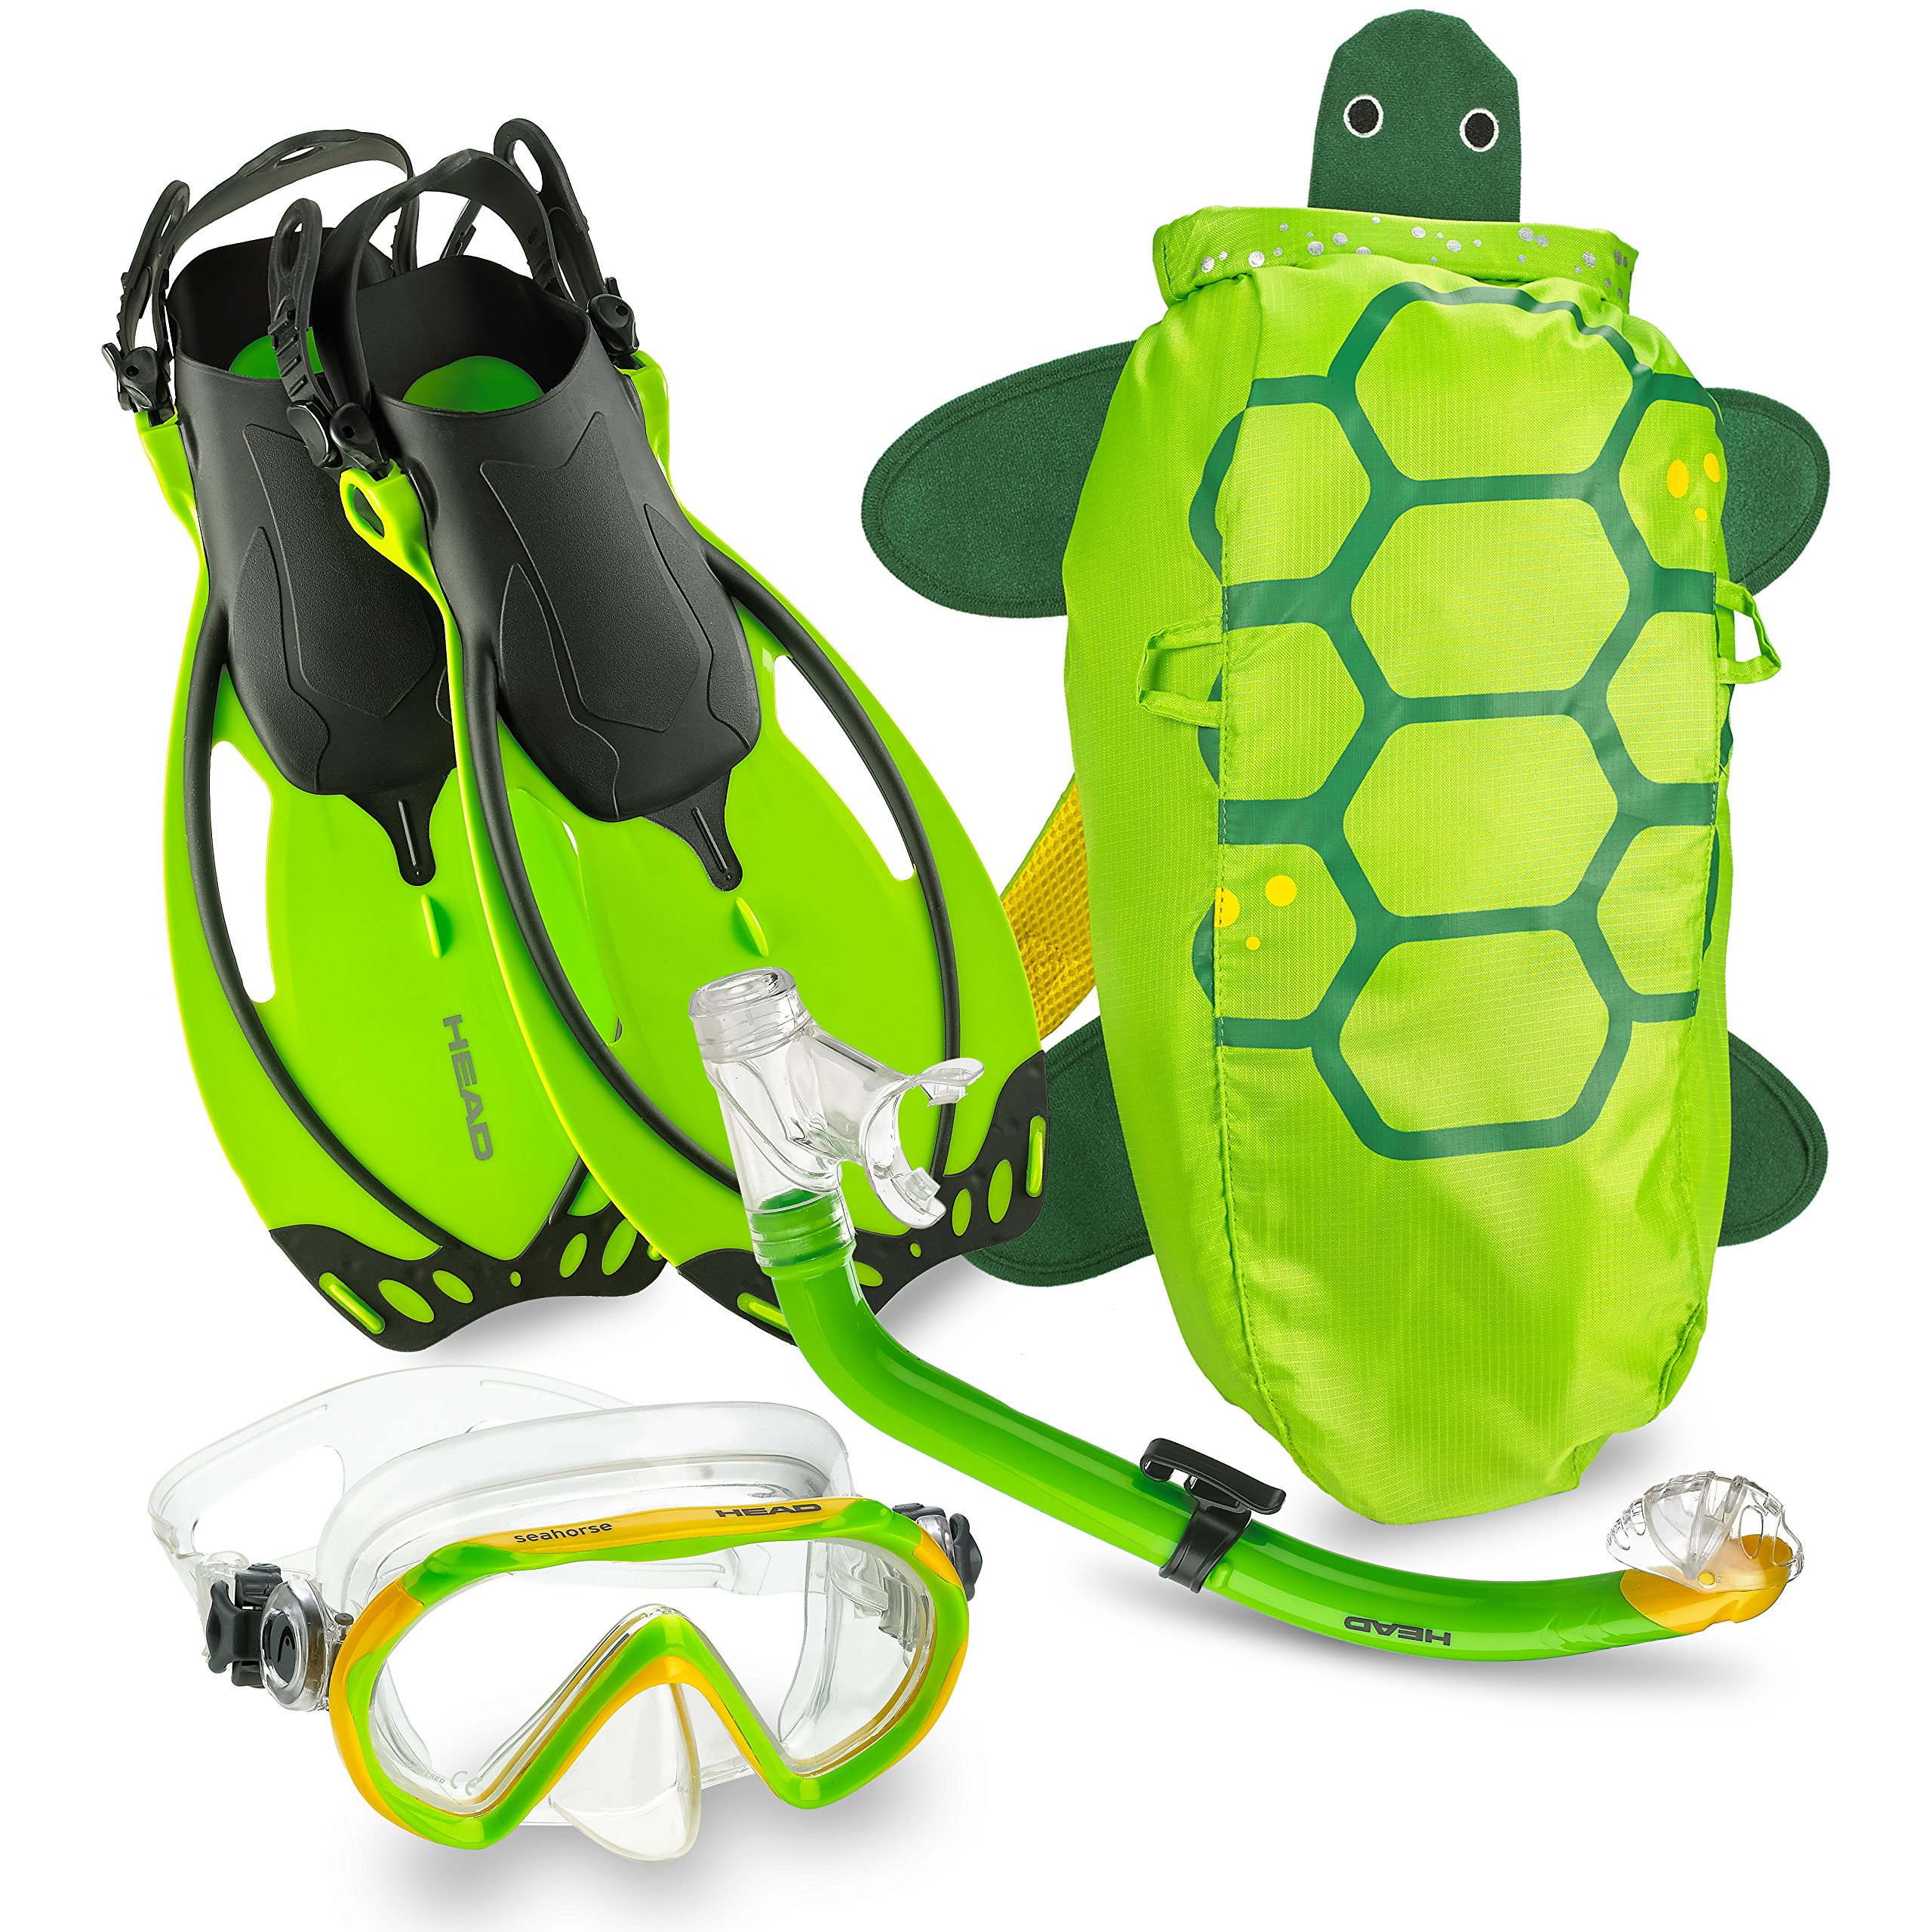 Mares Italian Collection Premium Youth Sea Pals Character Kids Mask Fin Snorkel Set Snorkeling Gear - Ultra-Clear Tempered Glass Lens Snorkeling Set (Lime, Large/1-4) by Mares